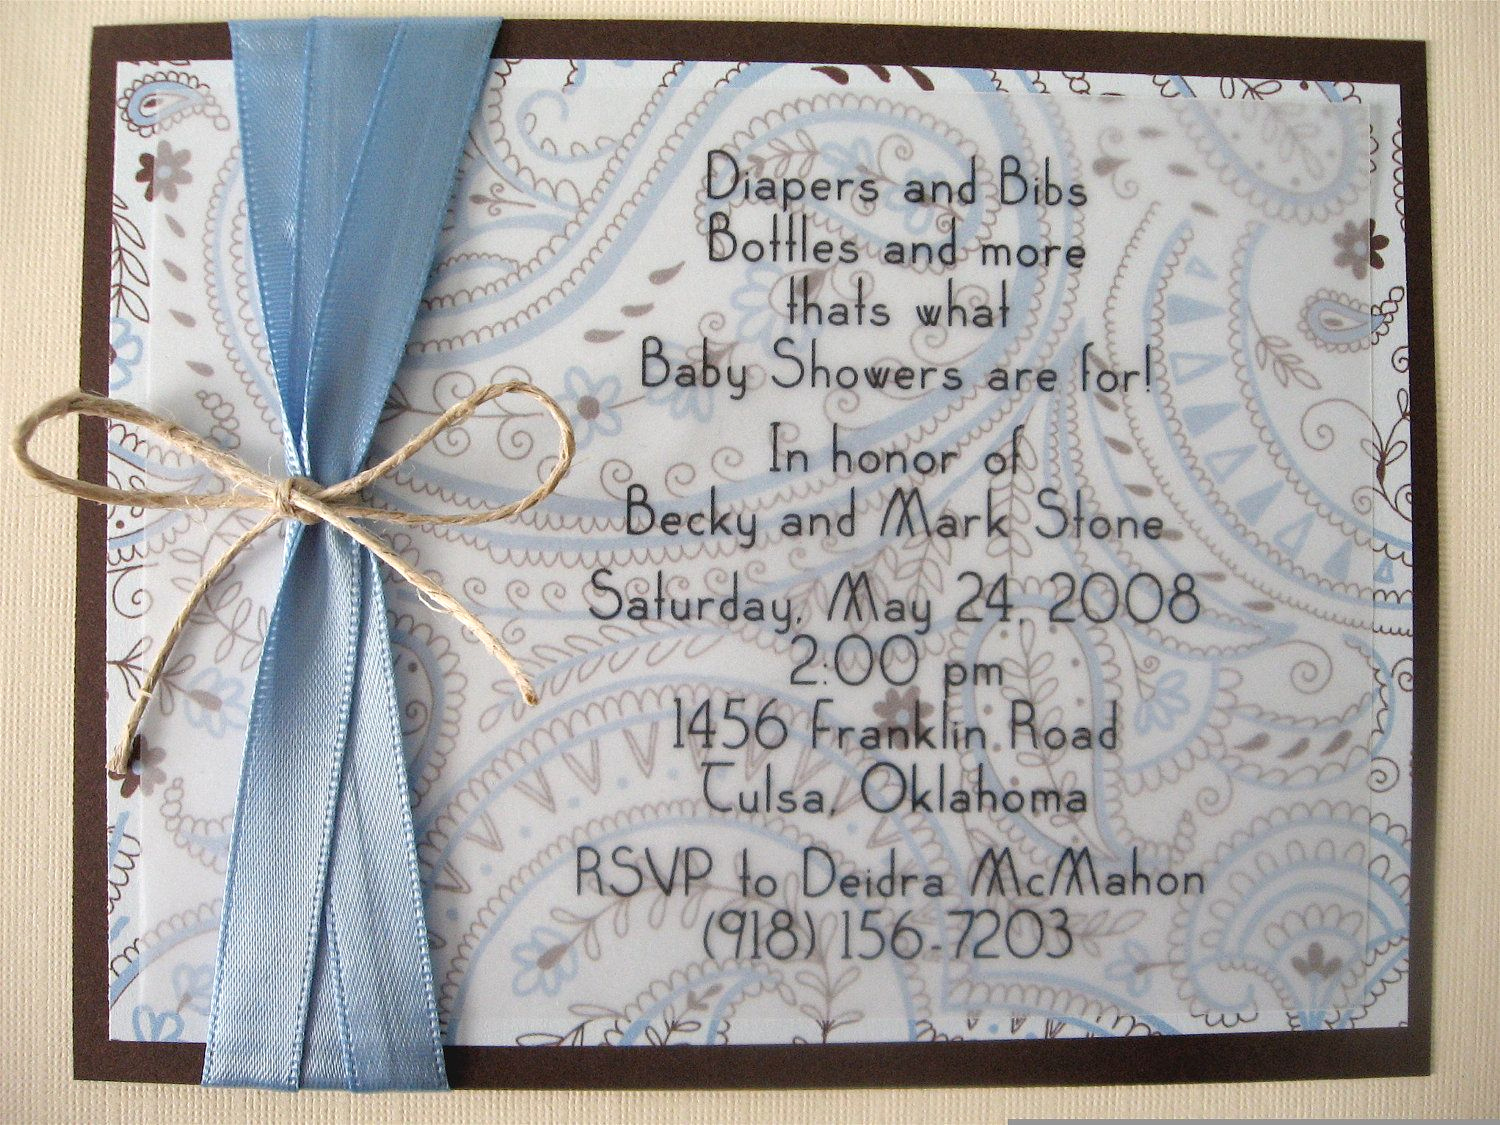 Baby Shower Invitation Ideas Homemade Awesome Homemade Baby Shower Invitations